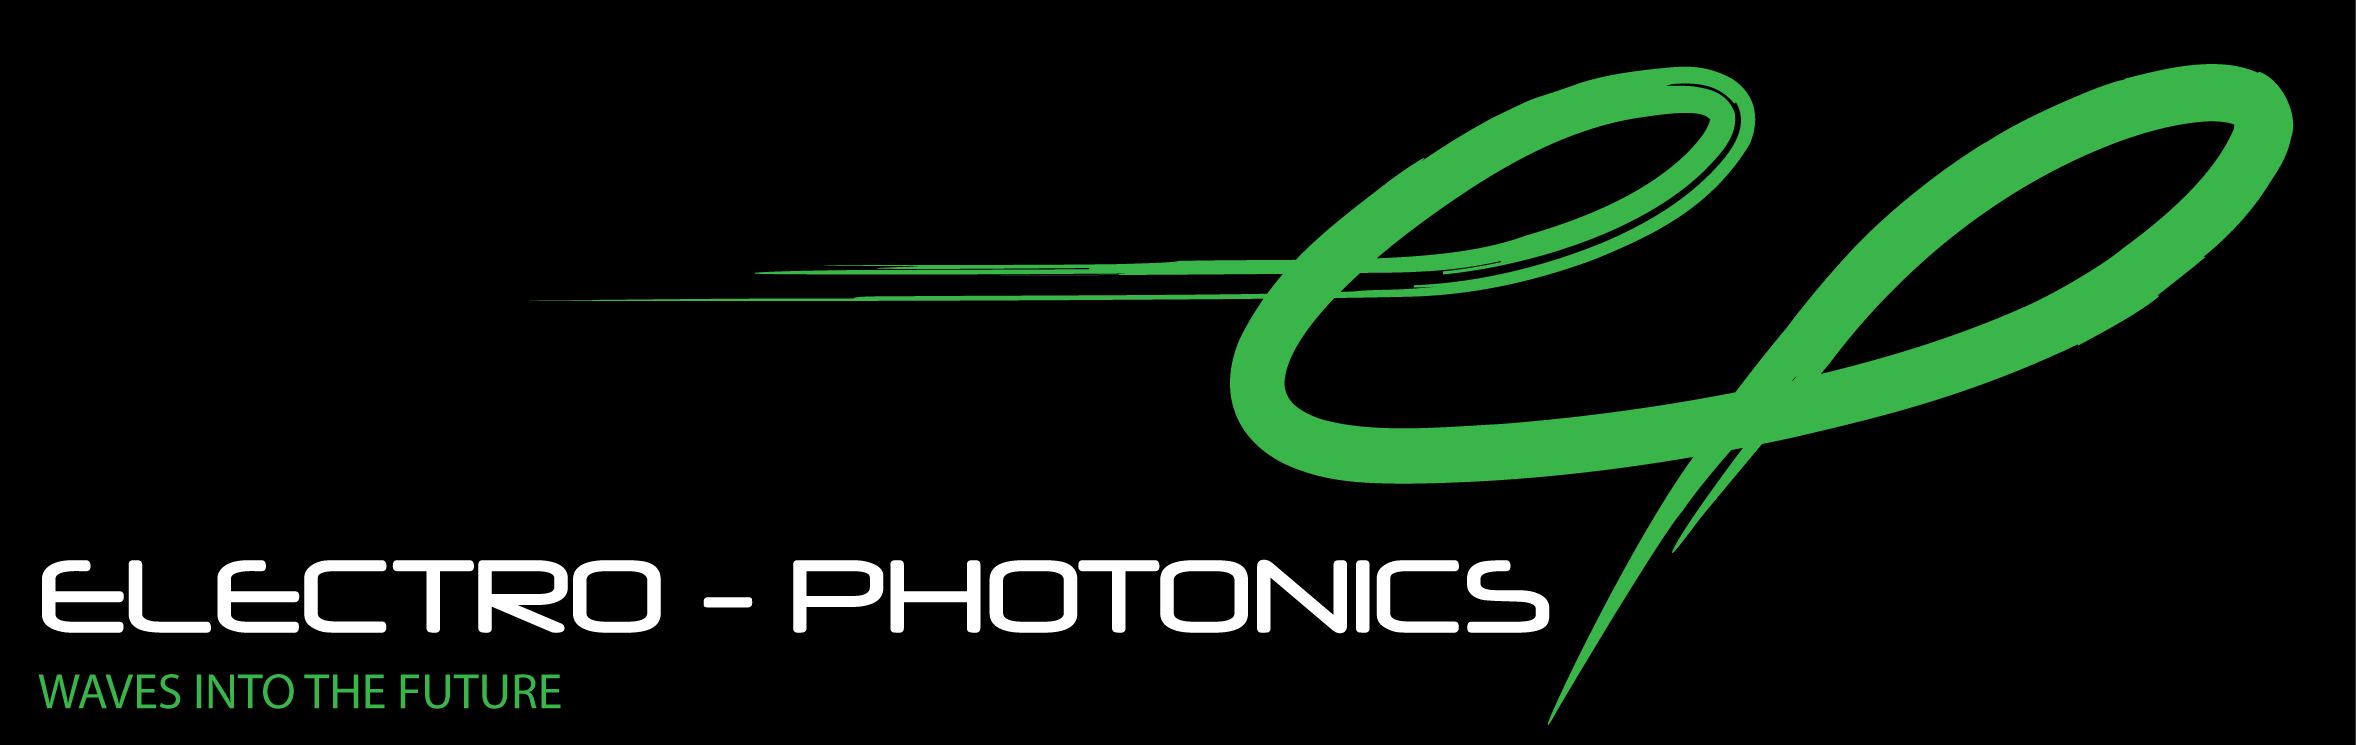 Electro-Photonics LLC